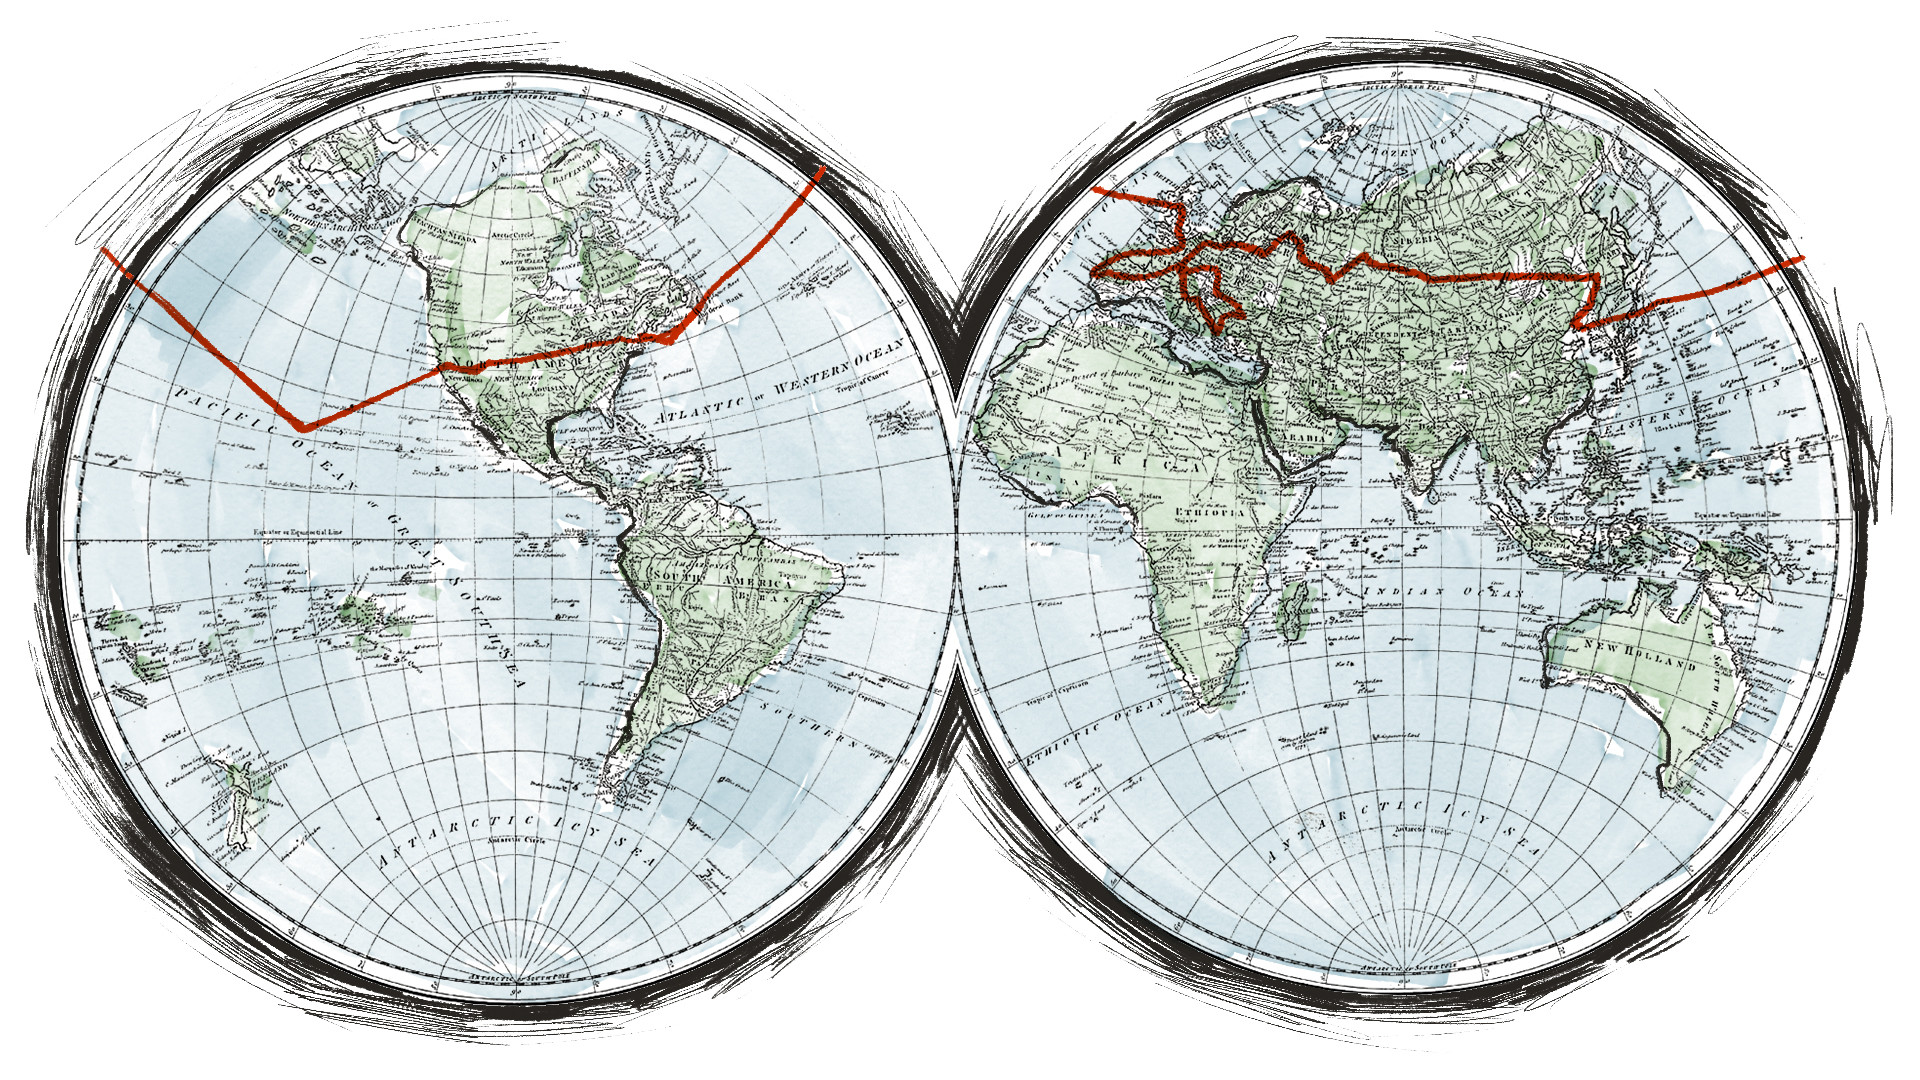 Onisim Panratov's approximate route around the globe